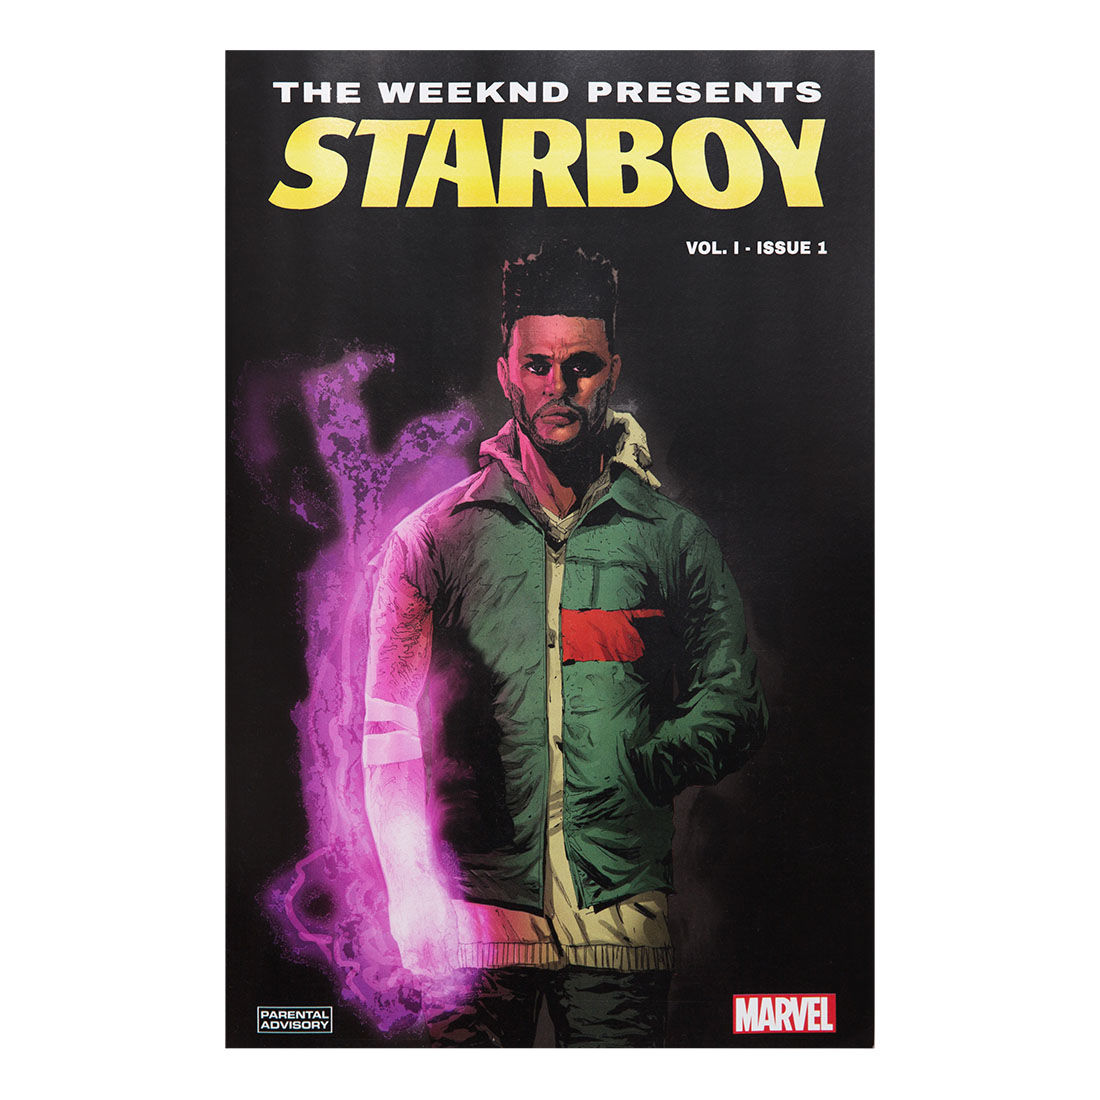 The Weeknd: THE WEEKND PRESENTS: STARBOY – VOL. I – ISSUE 1 COMIC BOOK